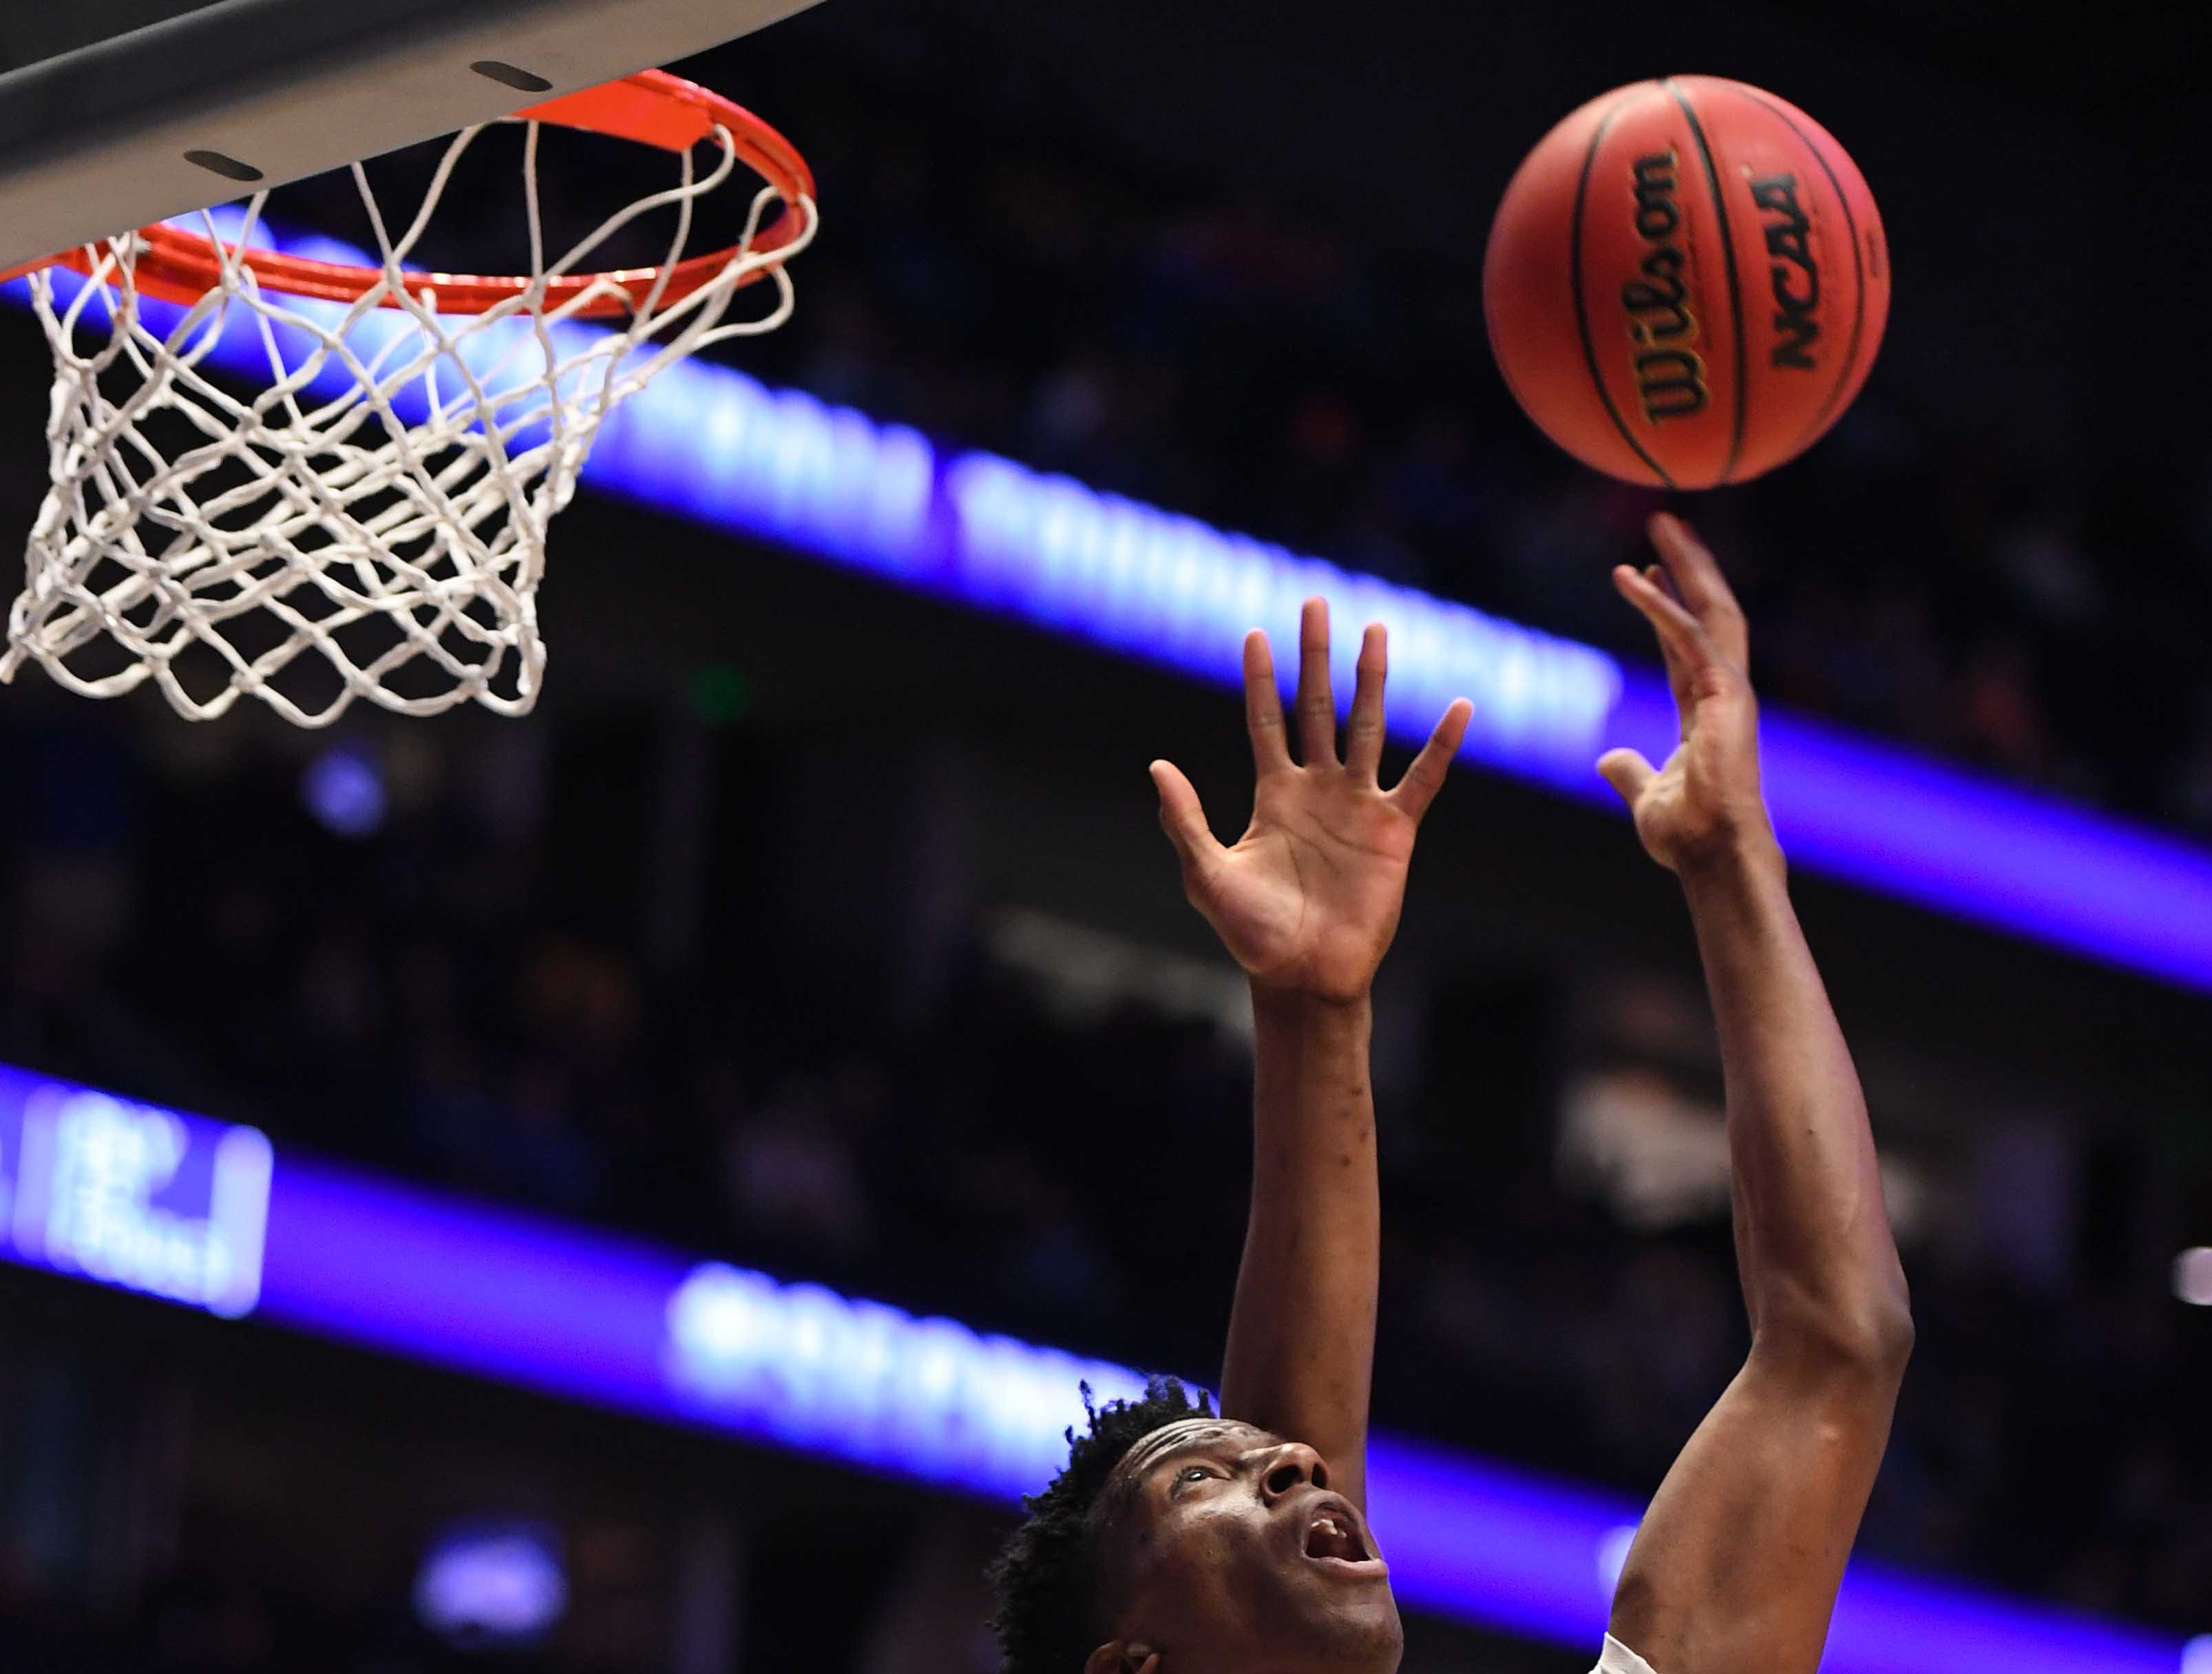 Mar 15, 2019; Nashville, TN, USA; LSU Tigers forward Kavell Bigby-Williams (11) makes a basket as he is defended by Florida Gators center Kevarrius Hayes (13) during the first half of the SEC conference tournament at Bridgestone Arena. Mandatory Credit: Christopher Hanewinckel-USA TODAY Sports